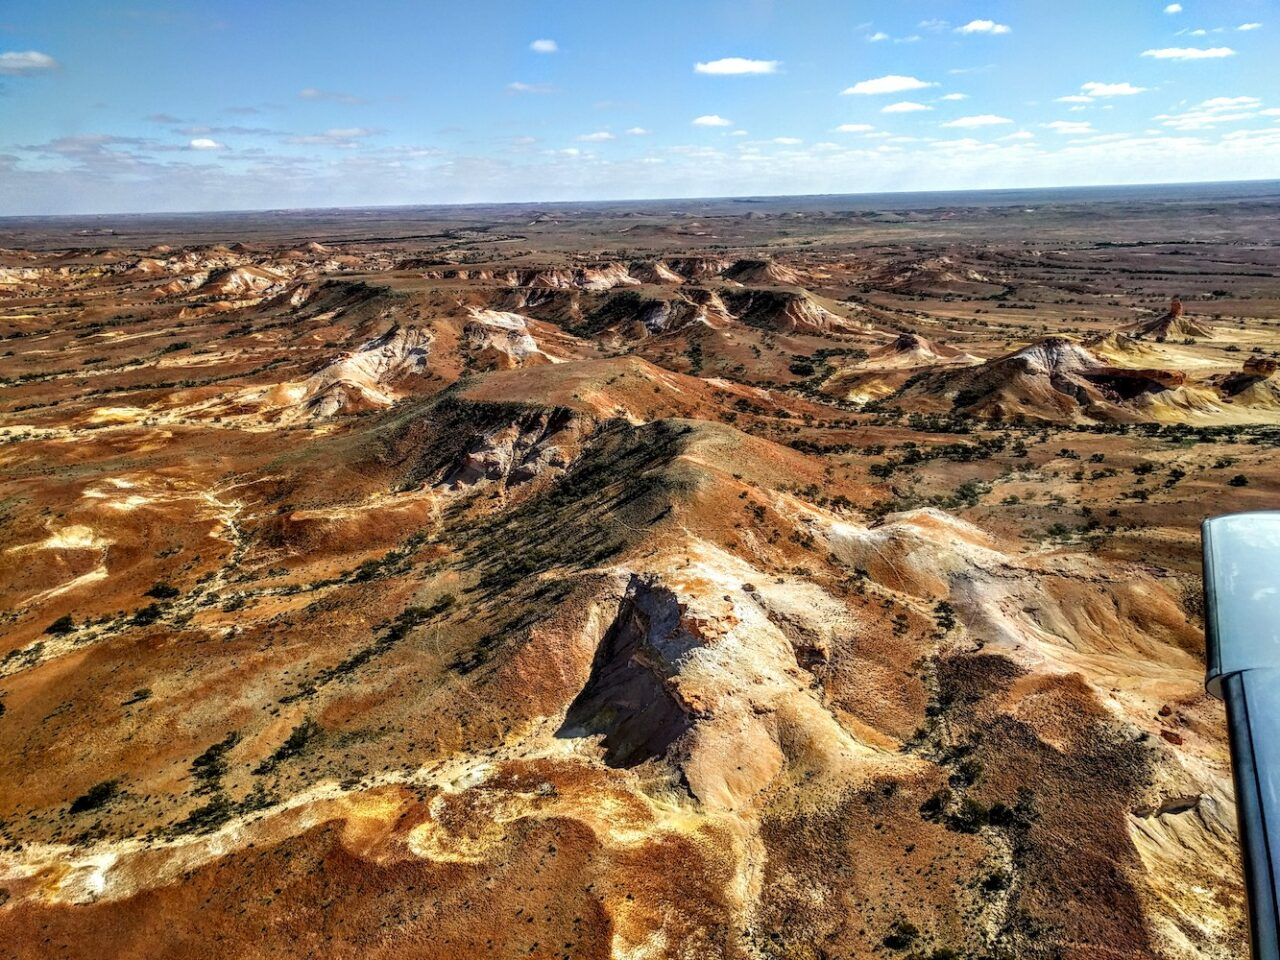 Painted Hills in South Australia – such brilliant colors the one must tone down the photo to make them believable